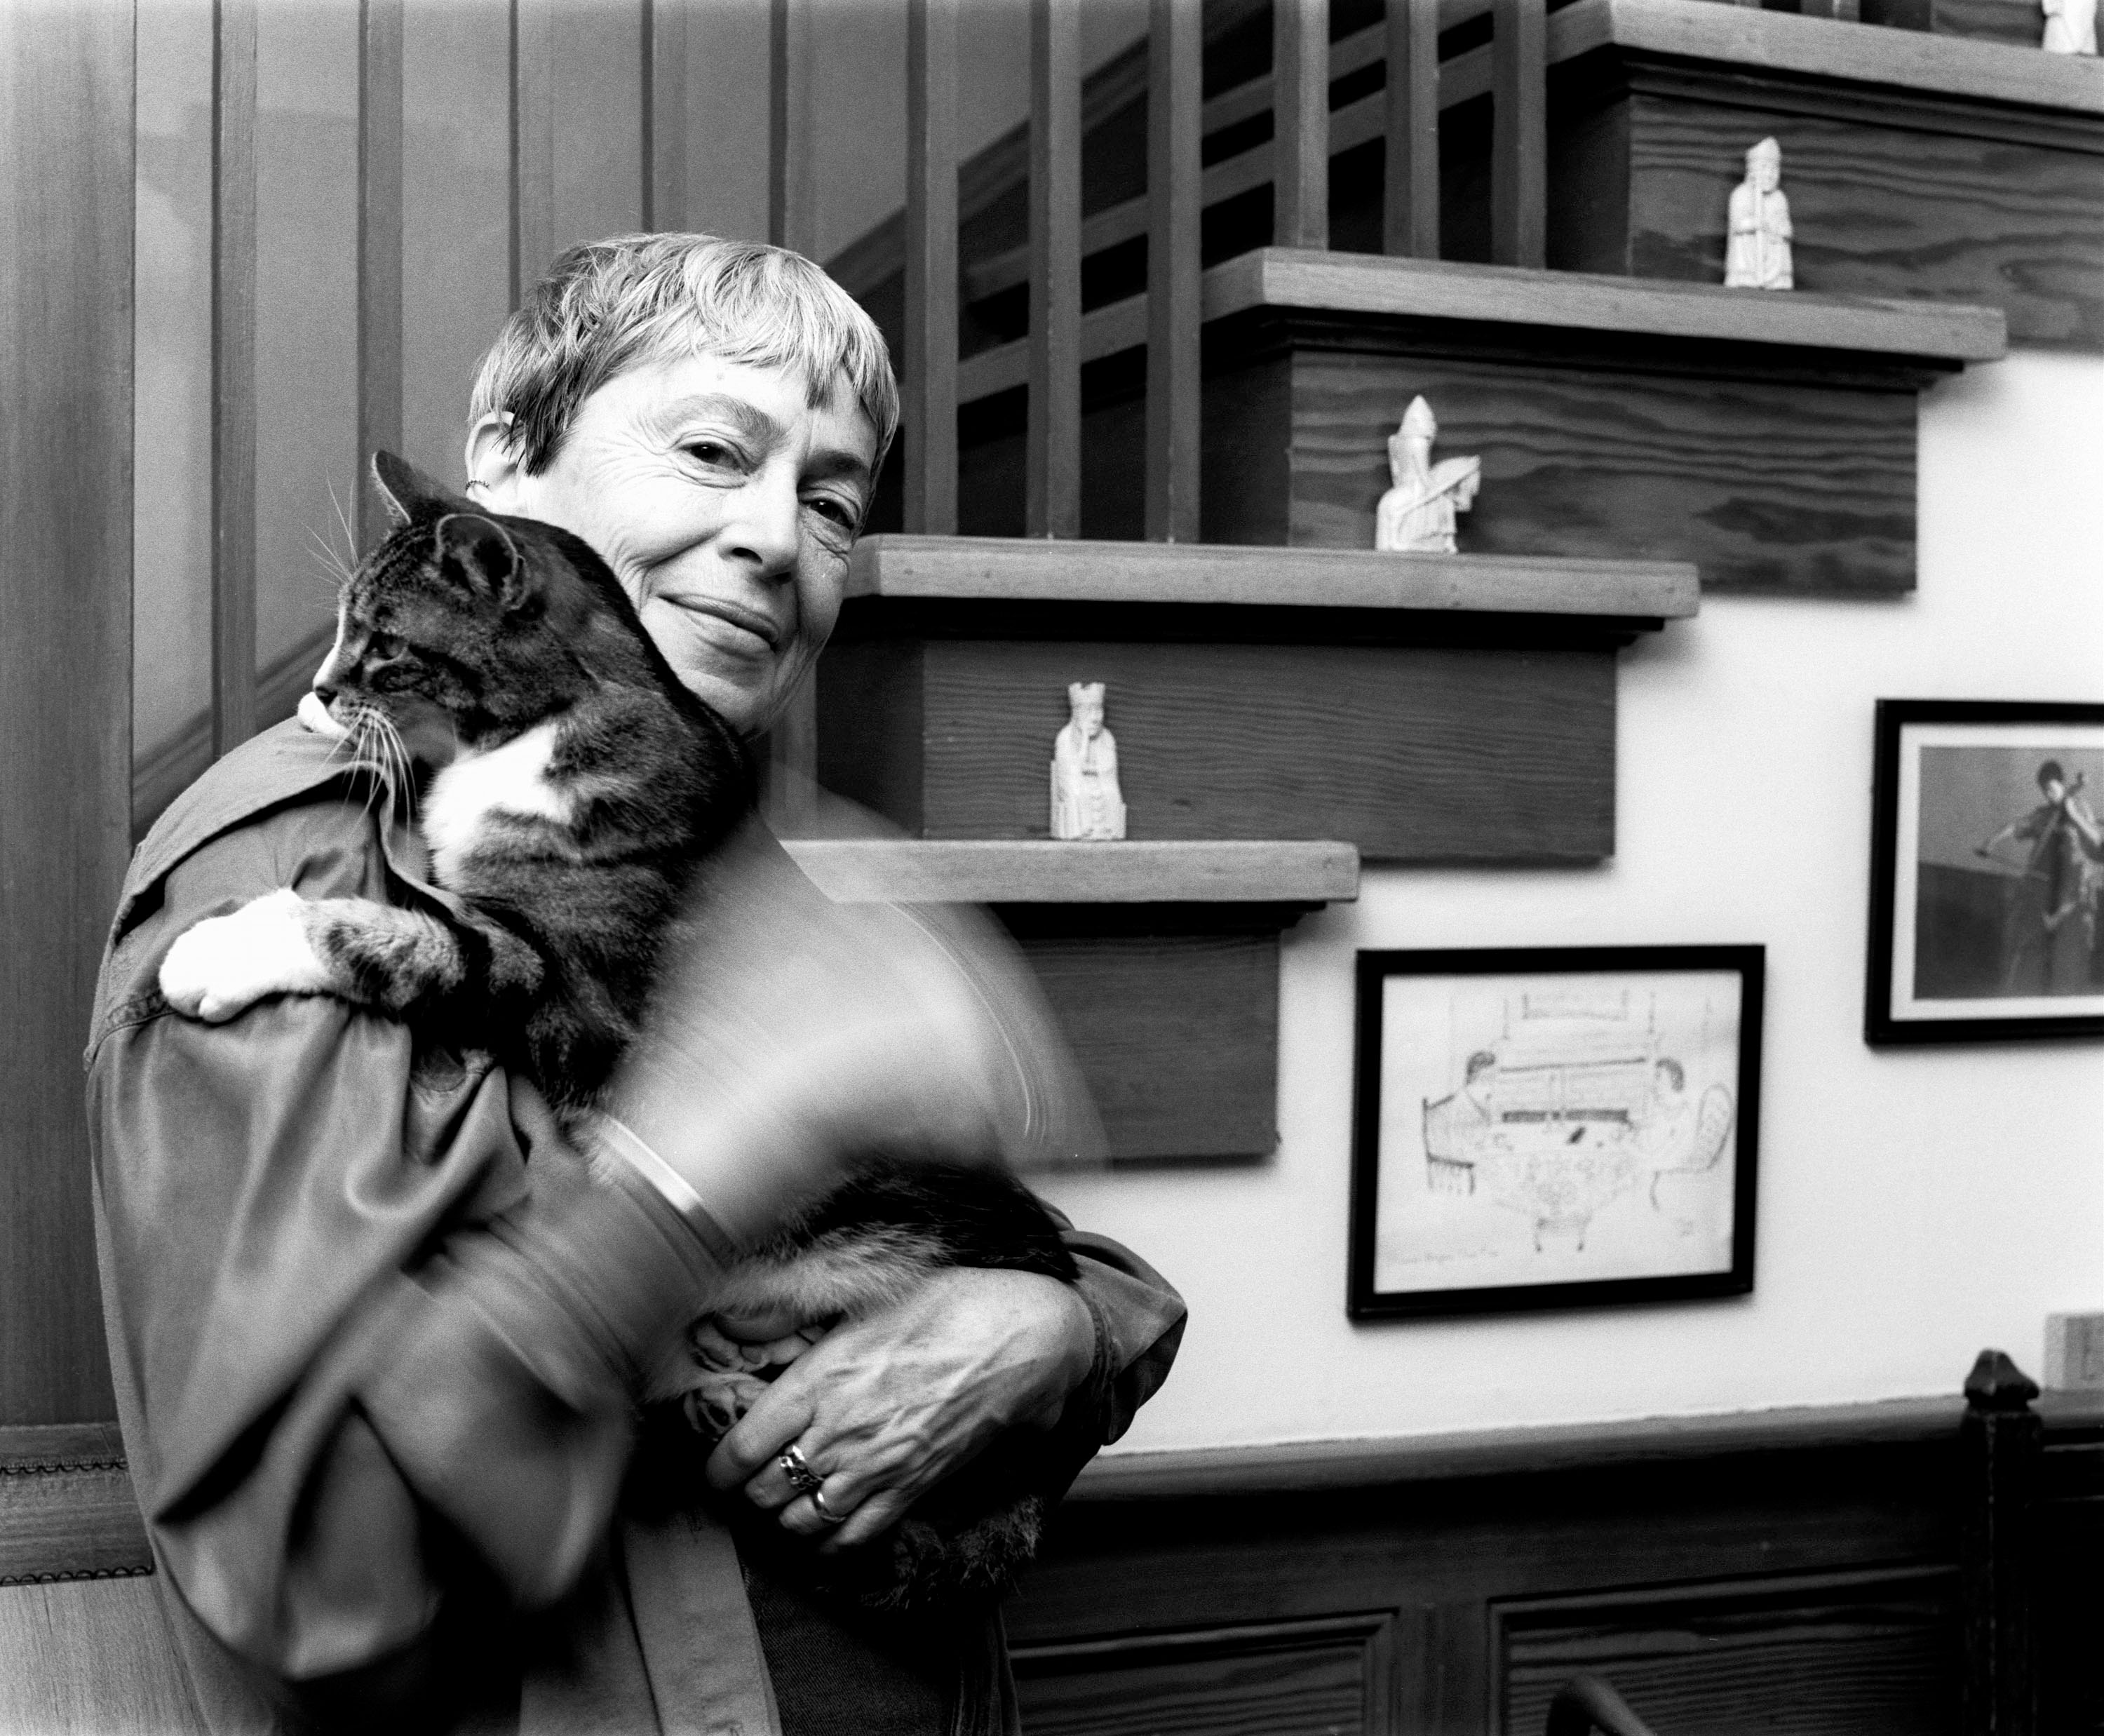 Ursula K. Le Guin and Bonzo, from Writers and their Cats